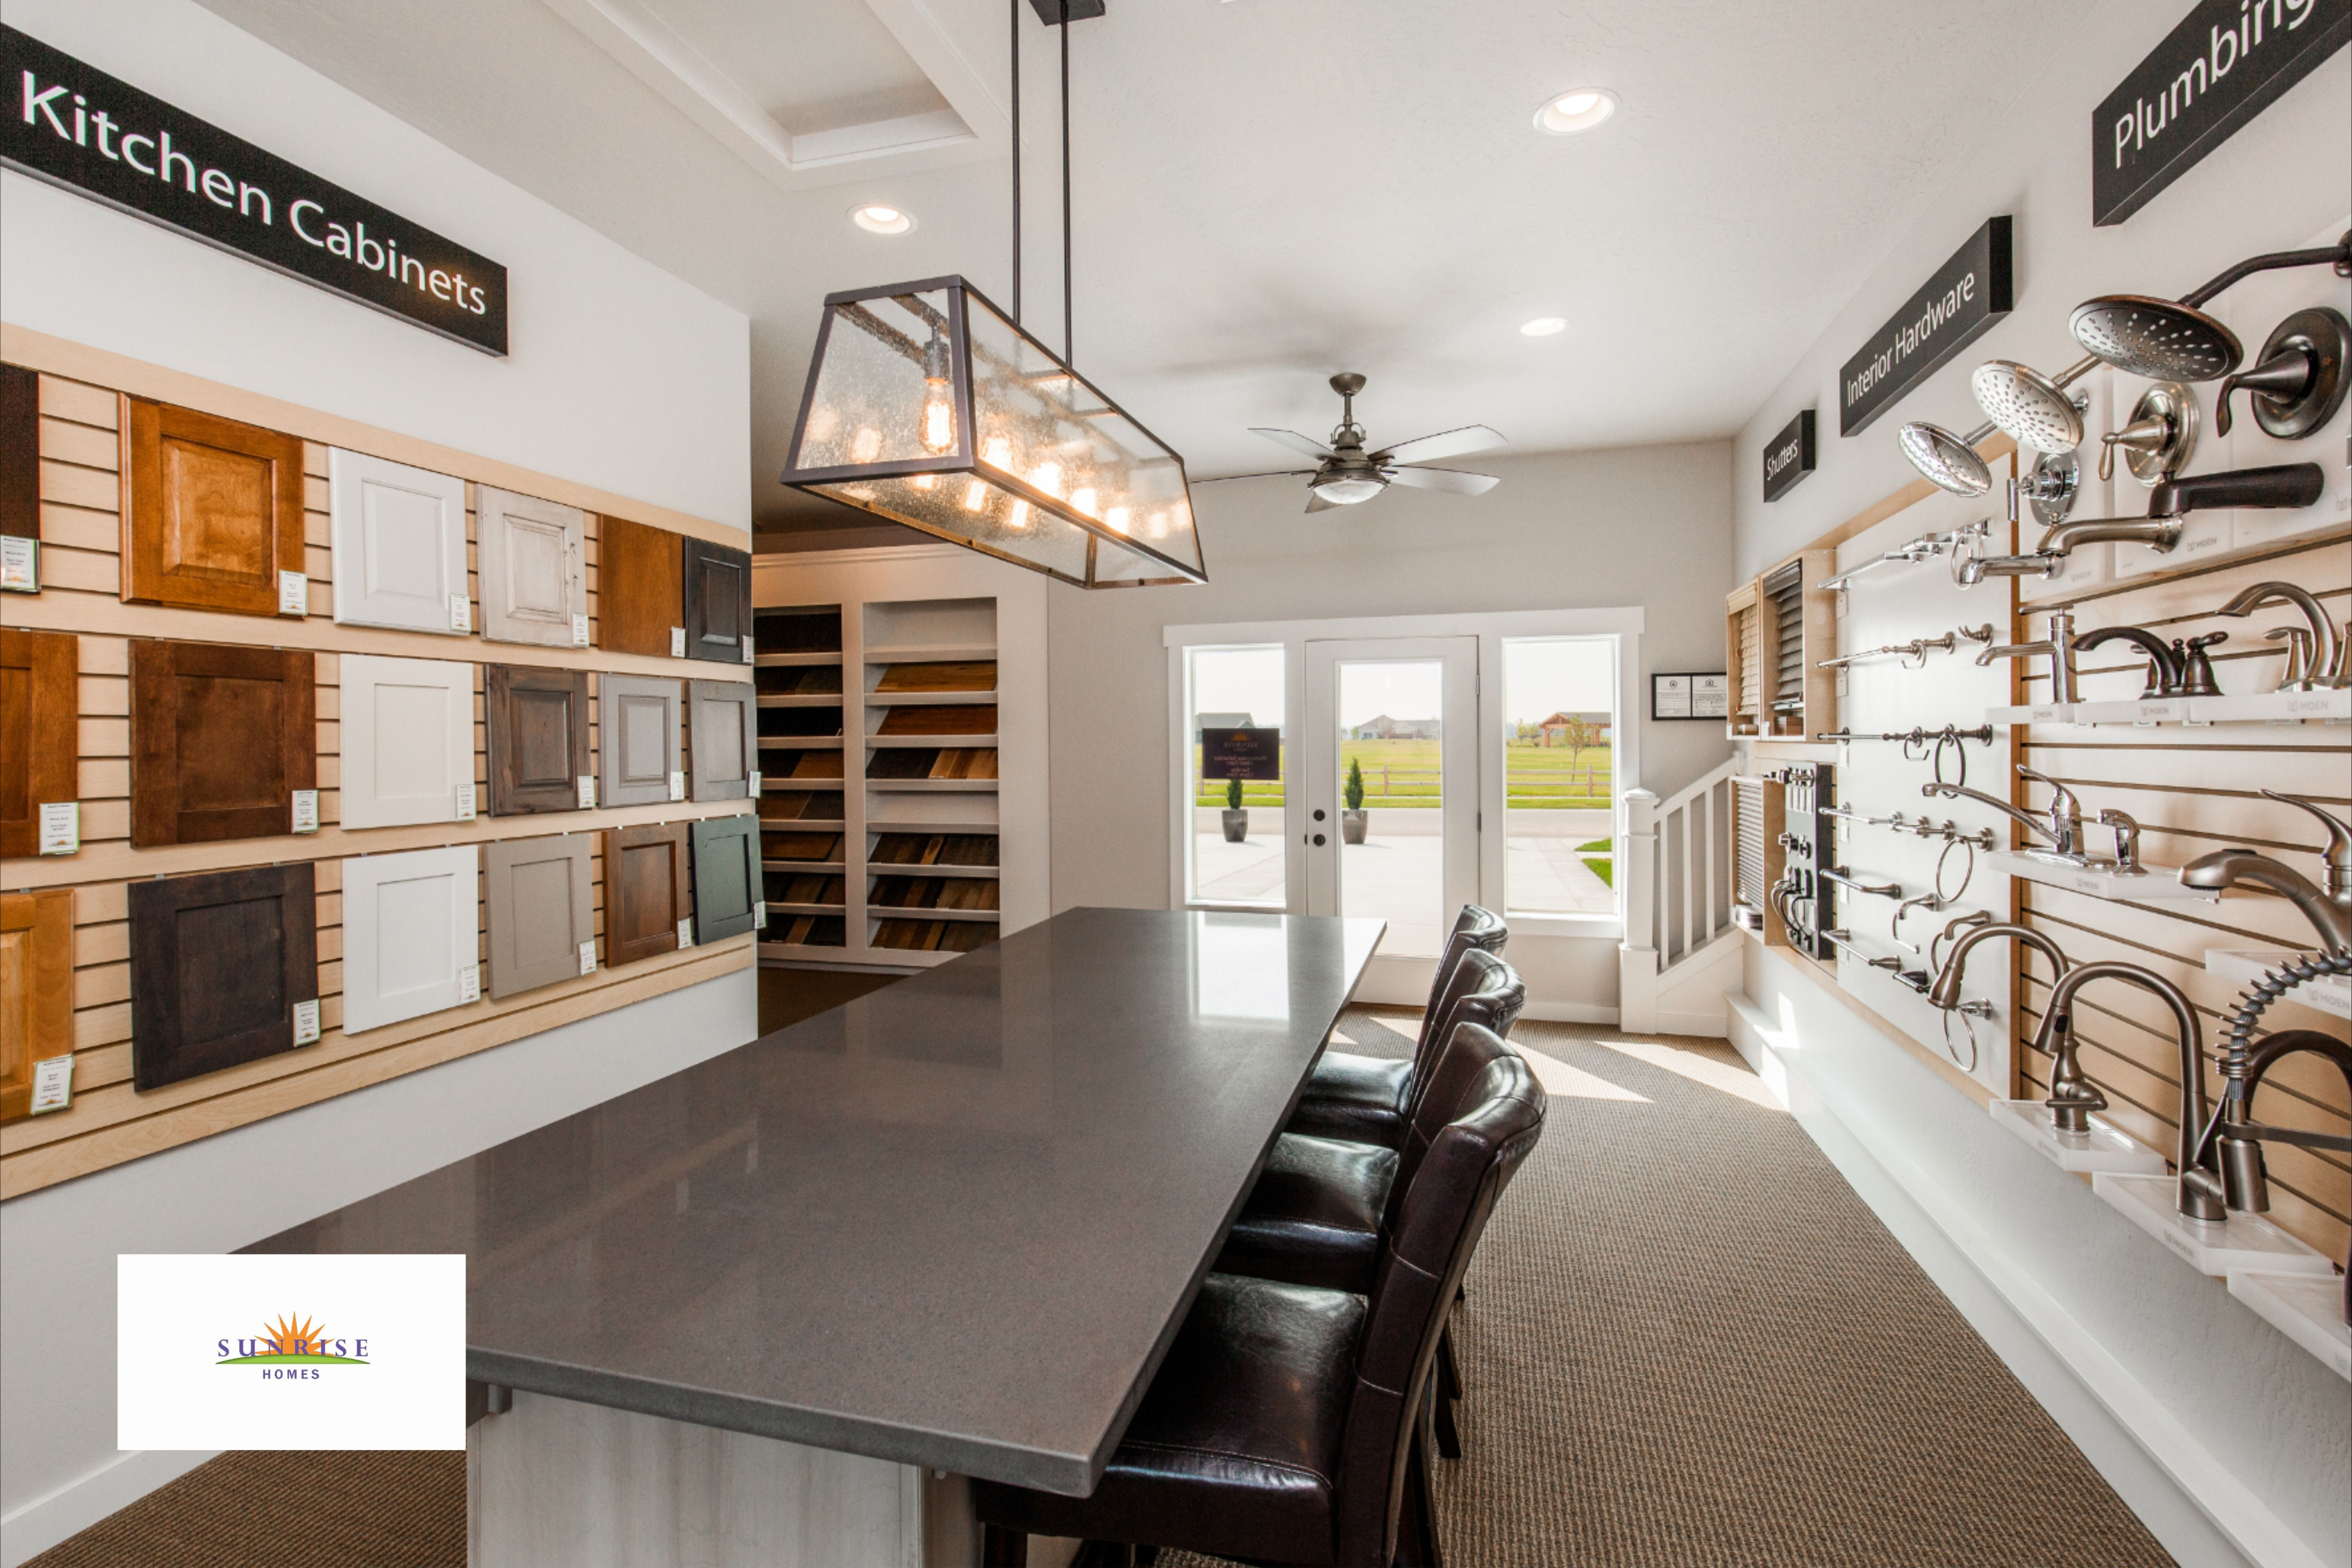 All In One Place Sunrise Homes Design Center Sunrise Home Home Buying A New Home